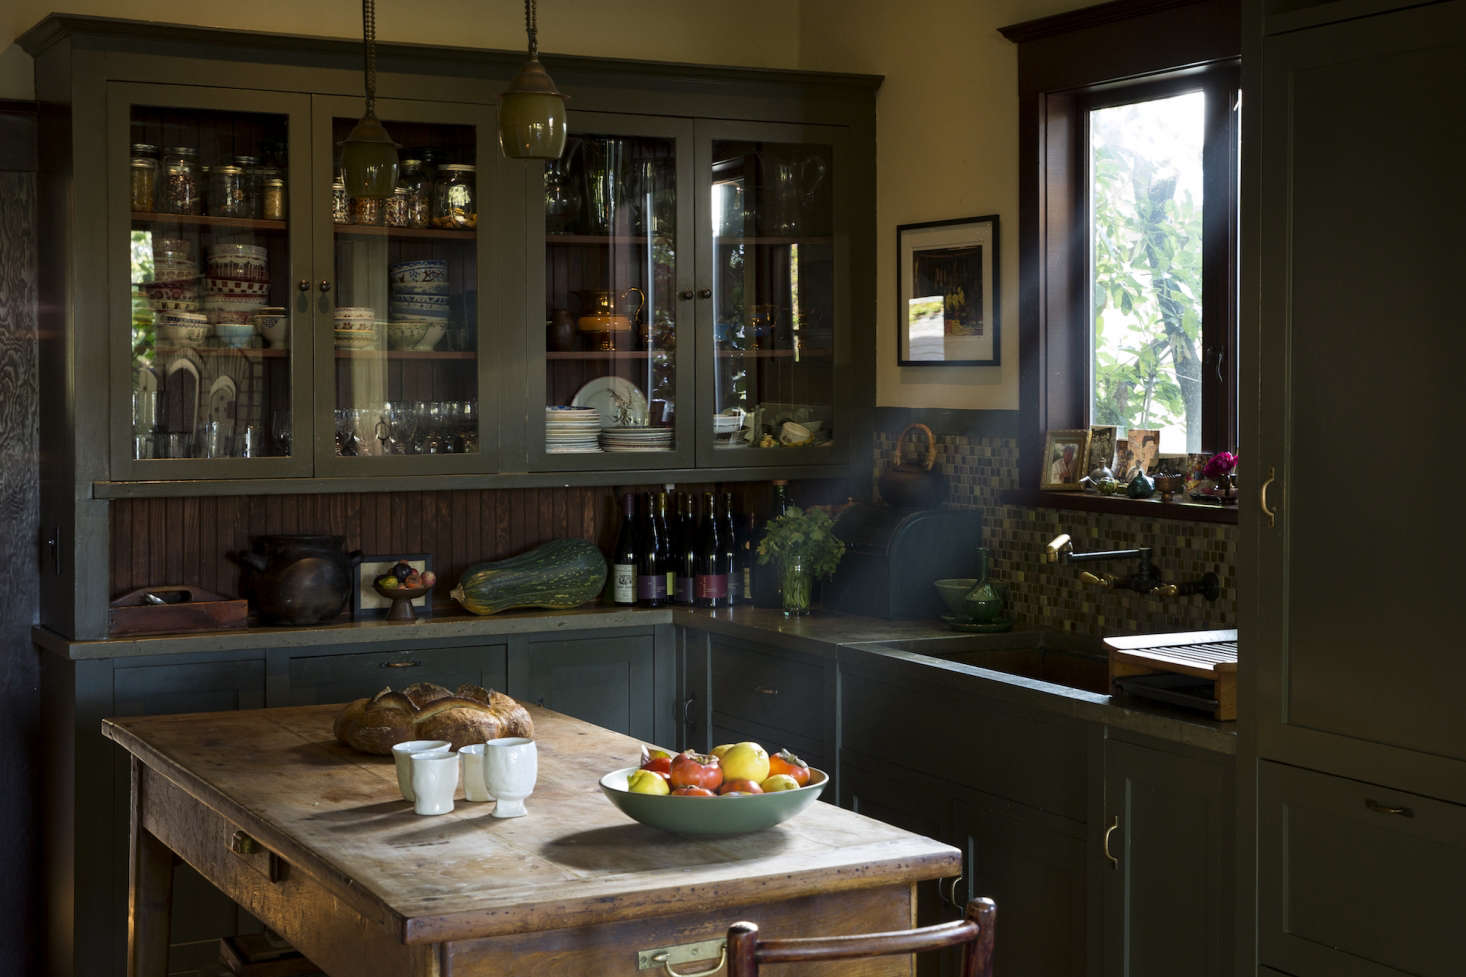 Ordinaire Green Craftsman Kitchen Berkeley Alice Waters